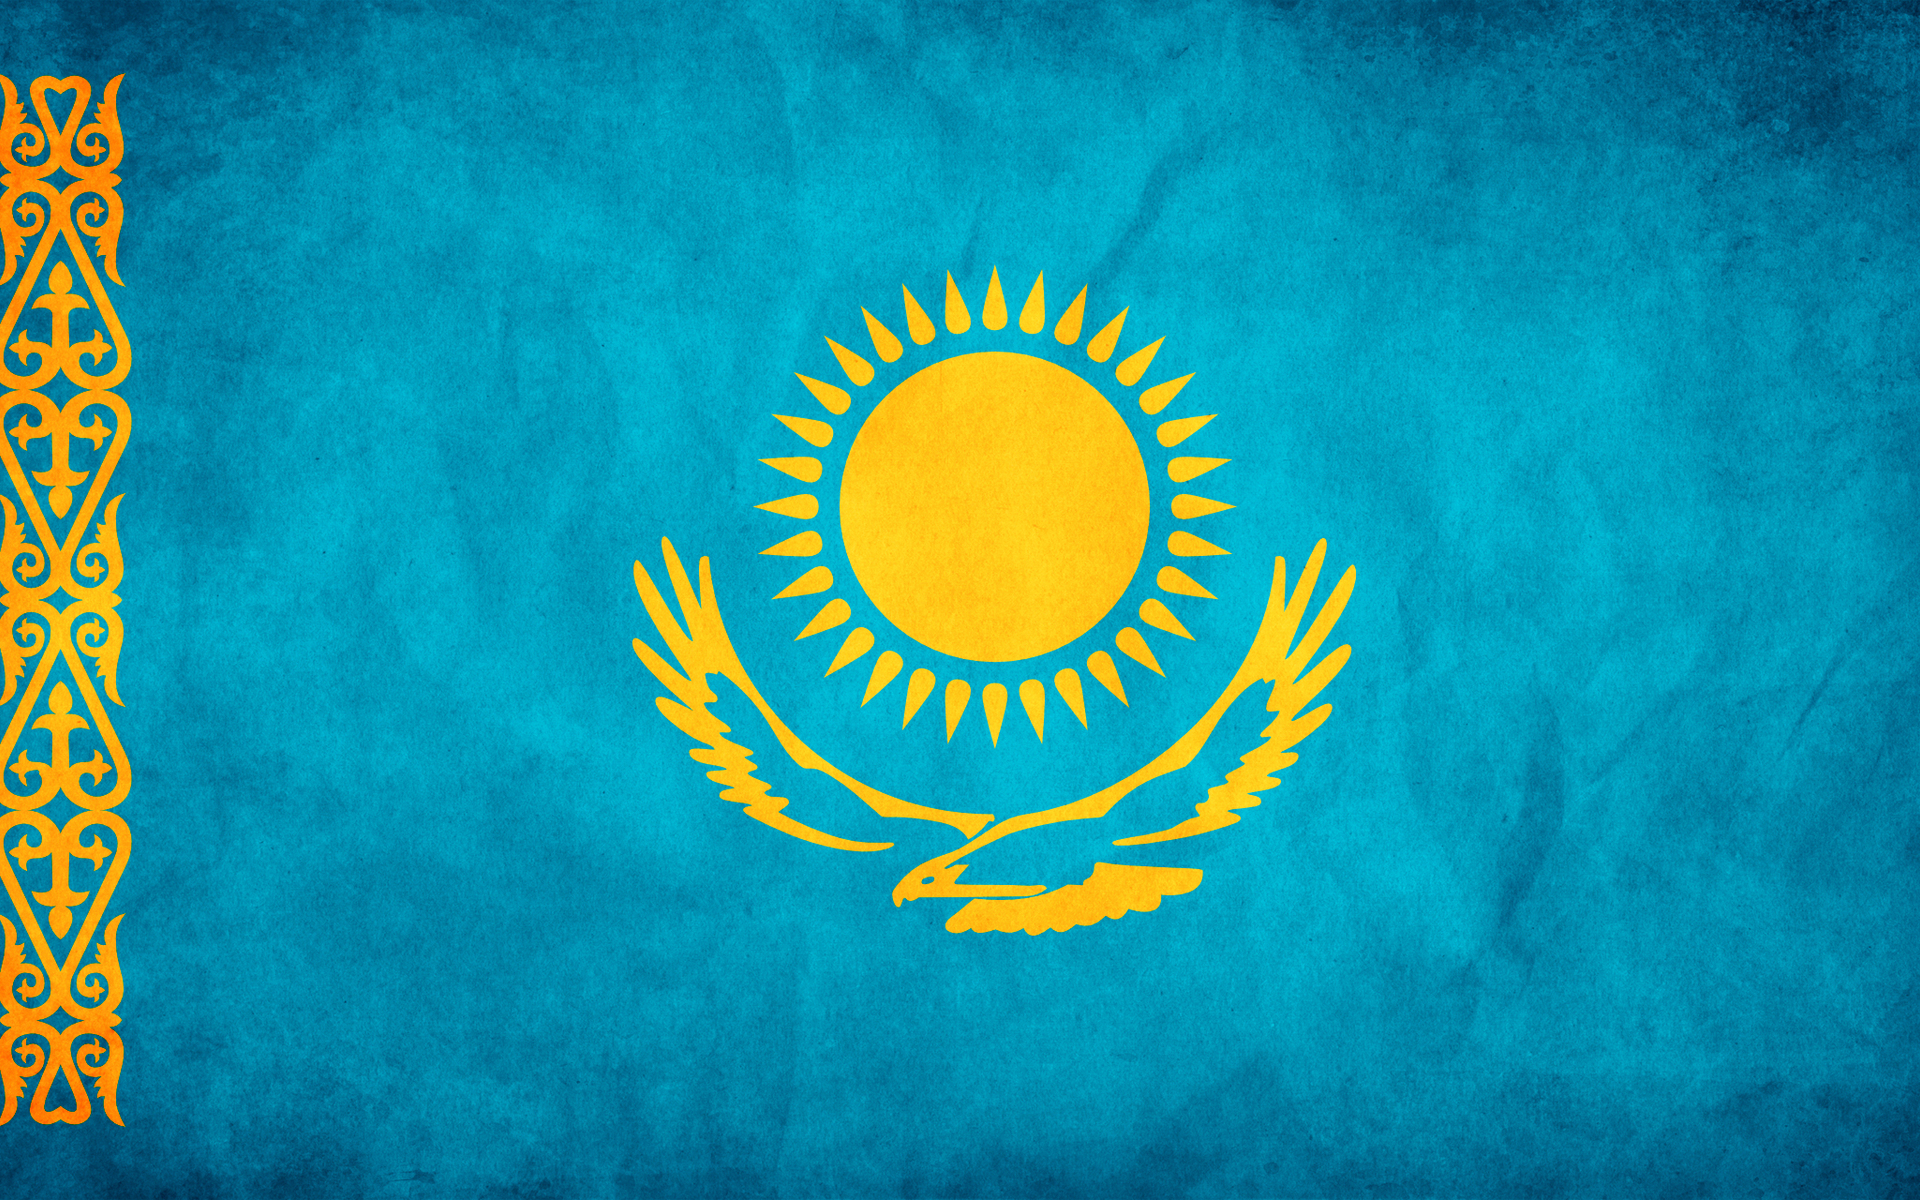 flag, texture flag, background, flag background, Kazakstan